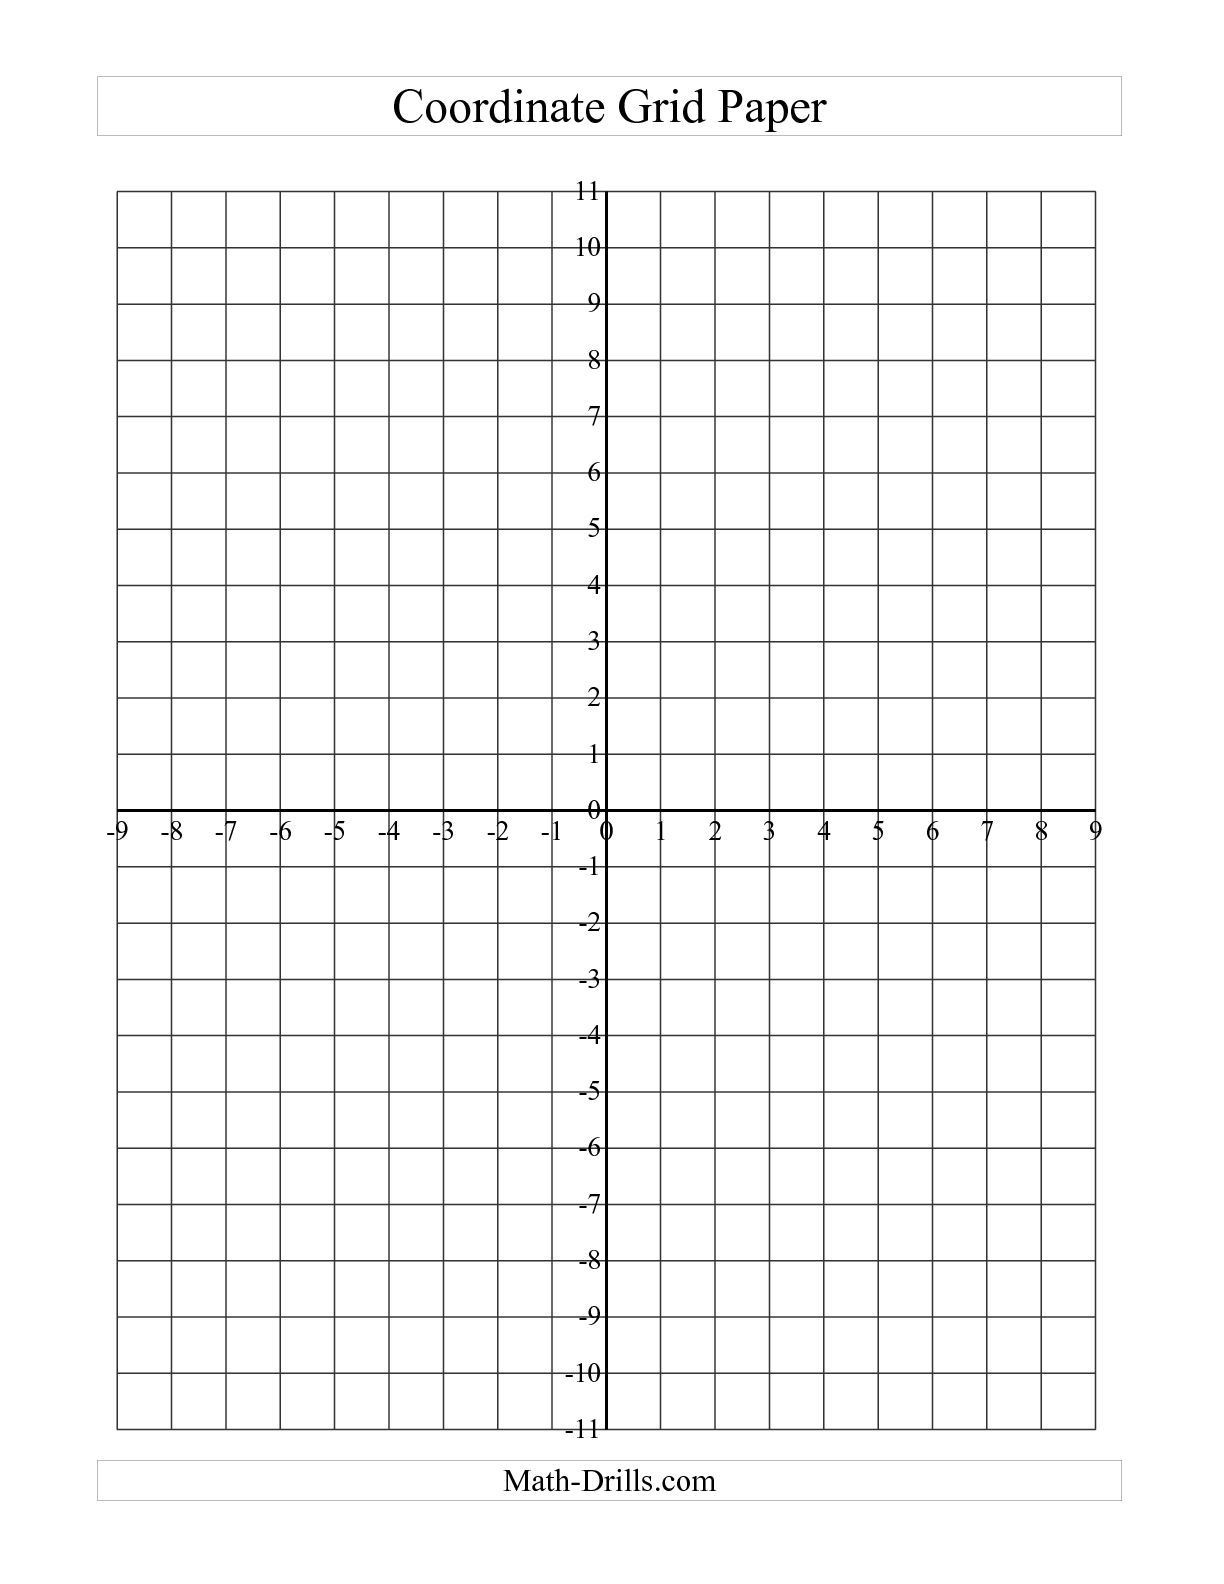 Coordinate Plane Worksheet 5th Grade Coordinate Grid Worksheets with Answers